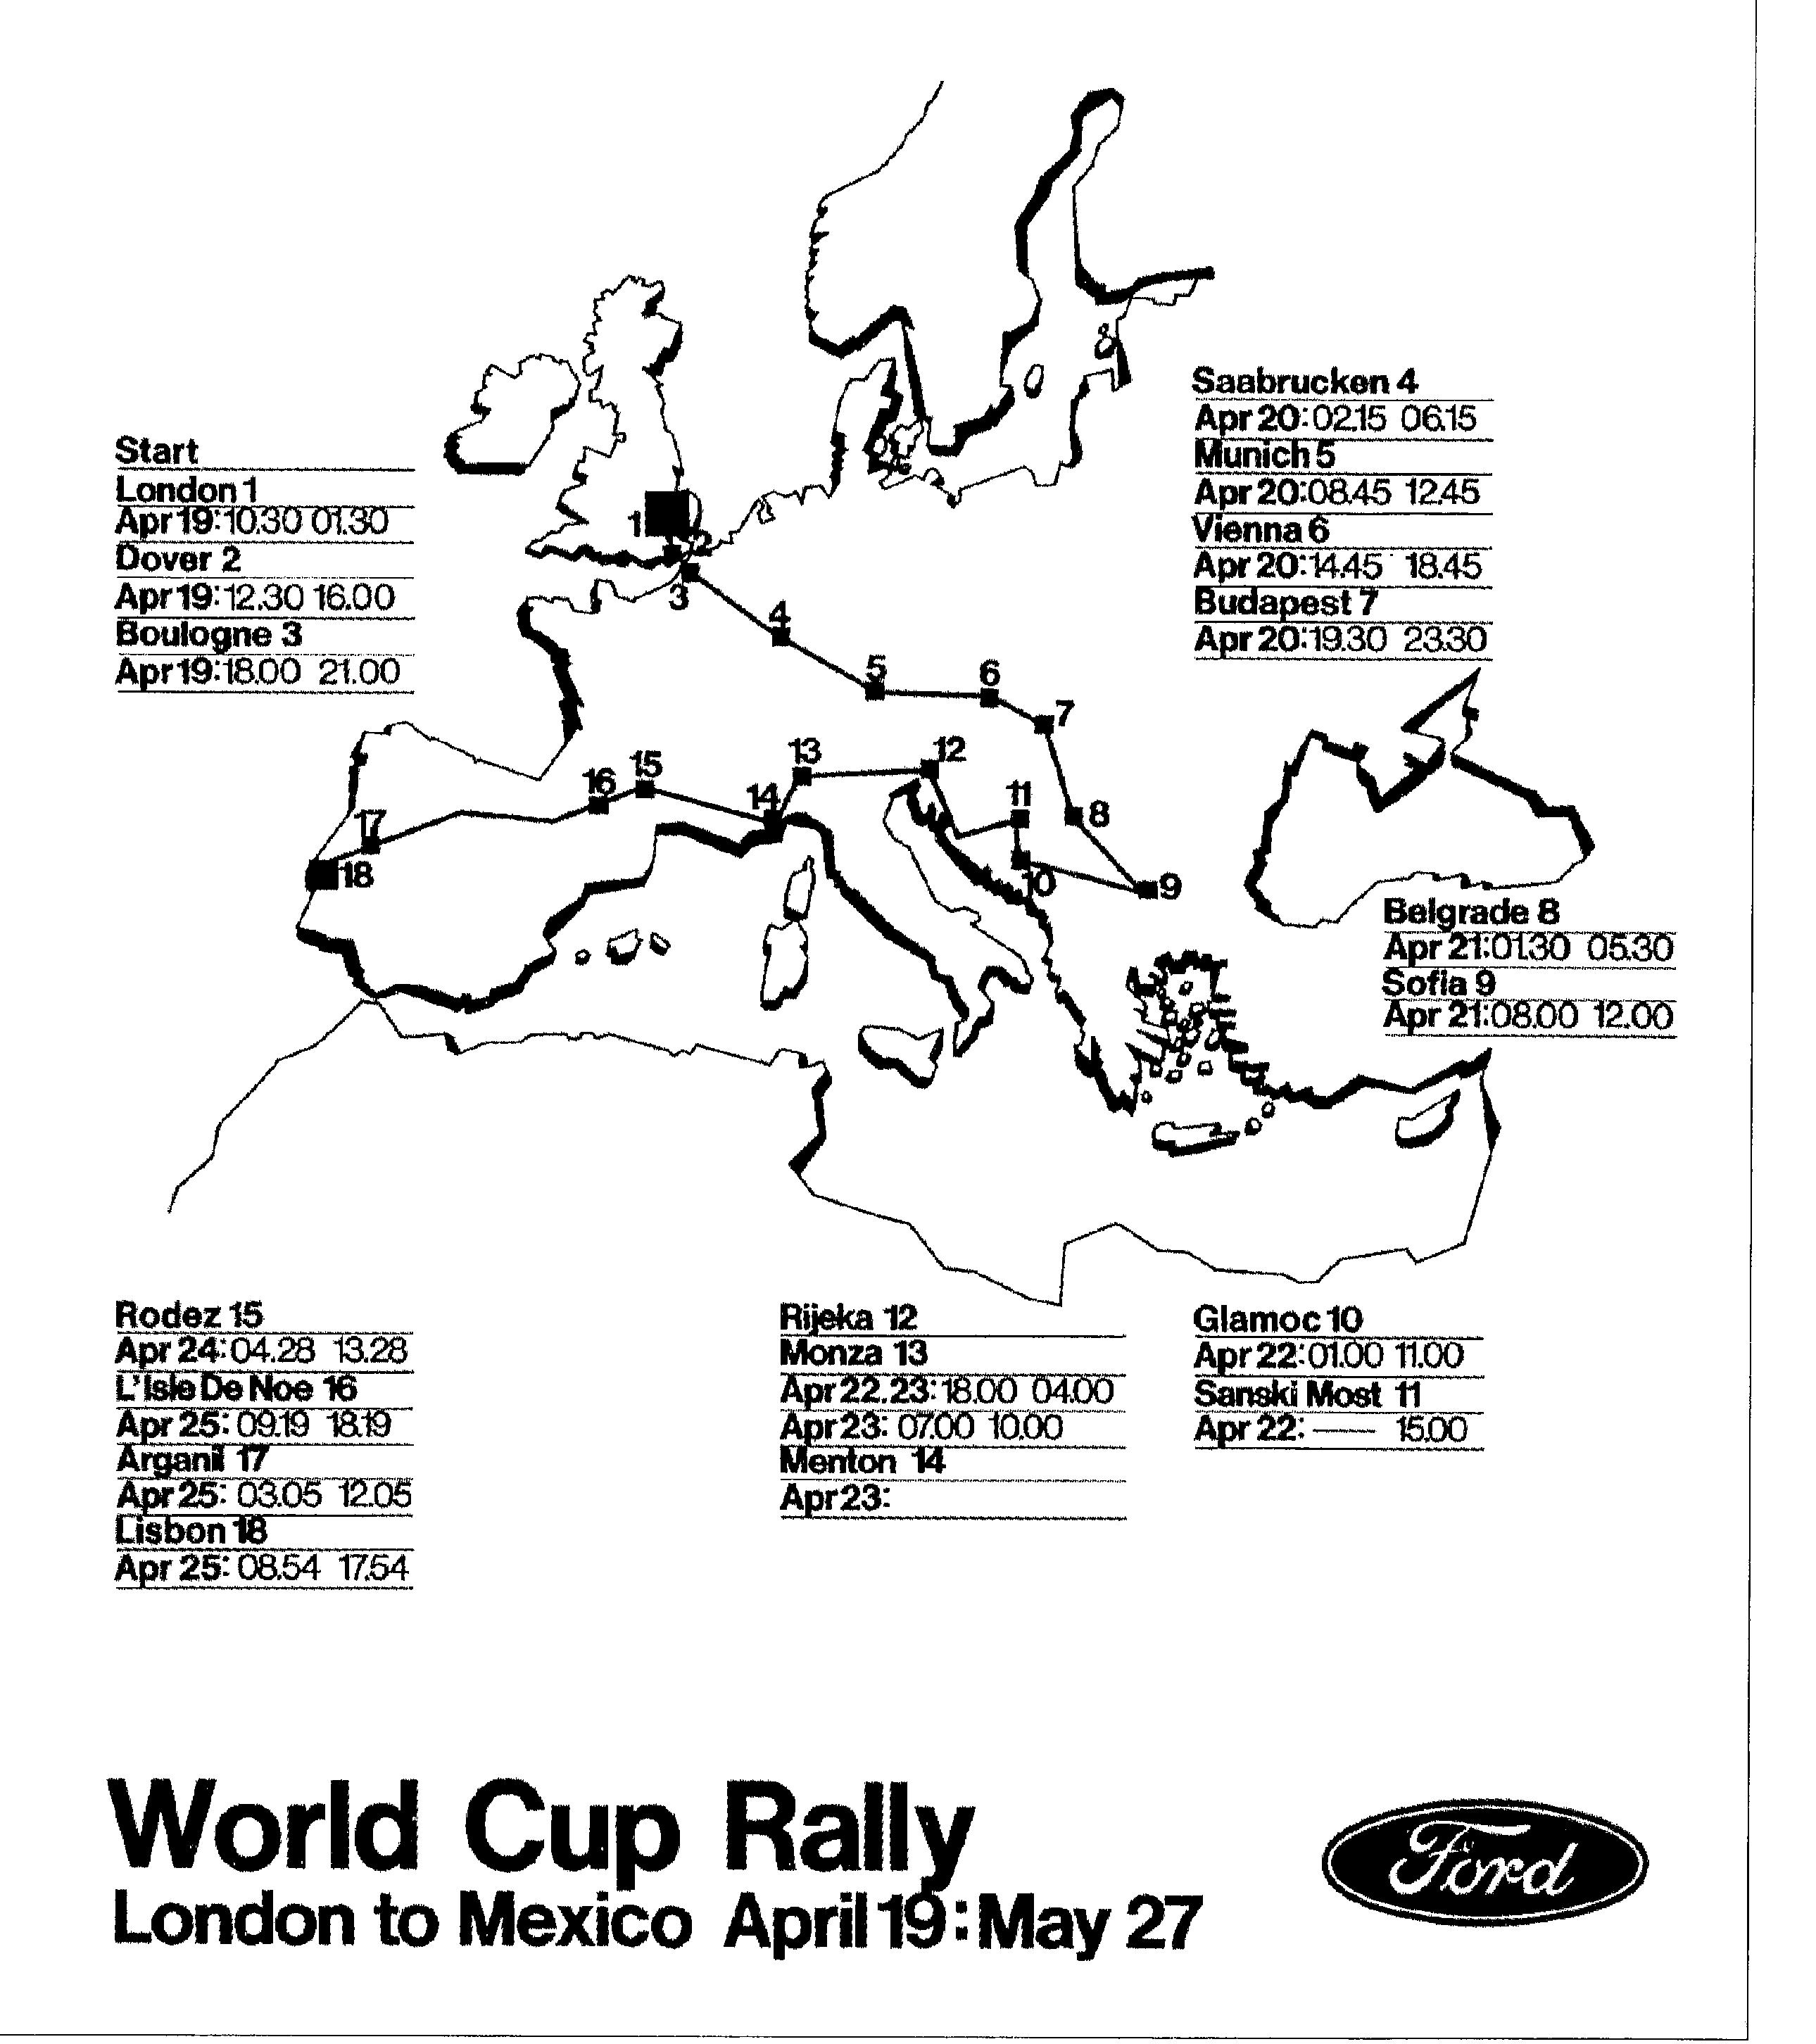 World Cup Rally Route & British Leyland's Team